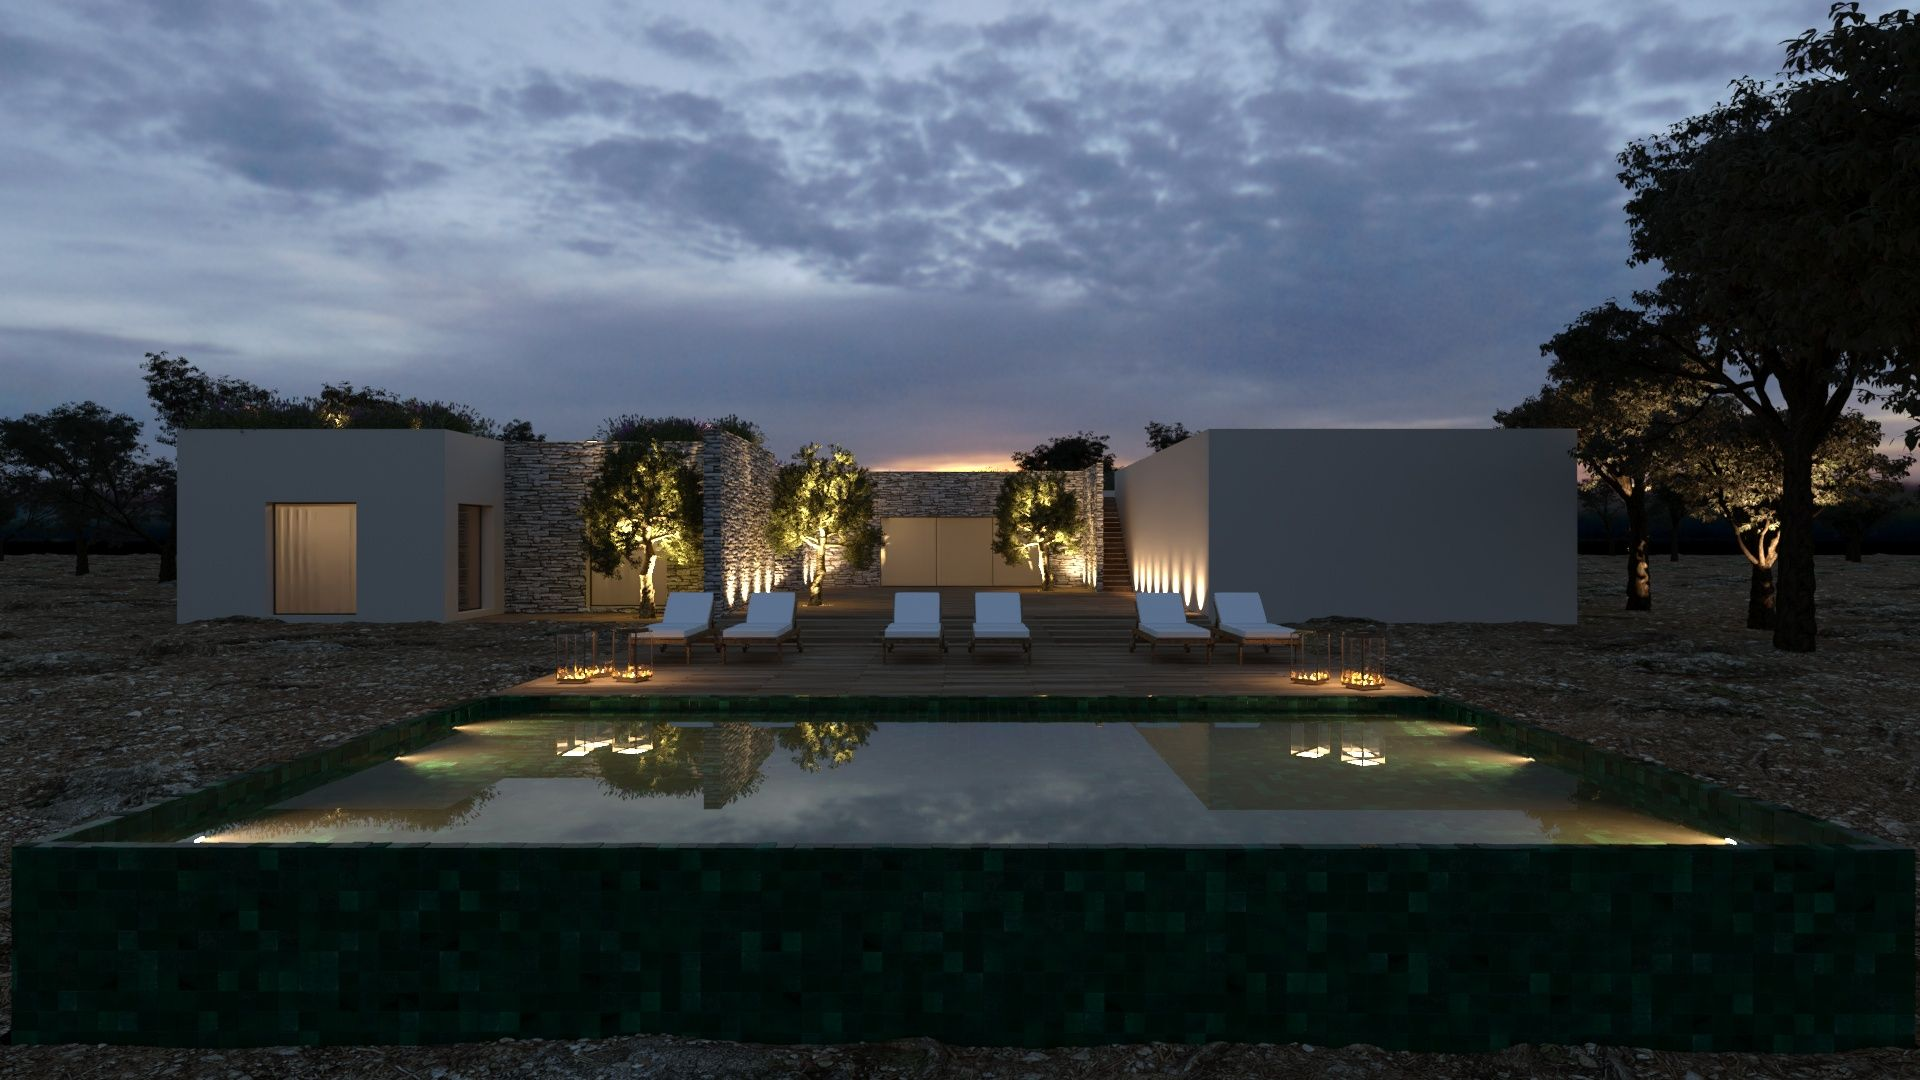 Residential project of Interior Architecture and Landscaping in Alentejo Portugal Cristina Jorge de Carvalho